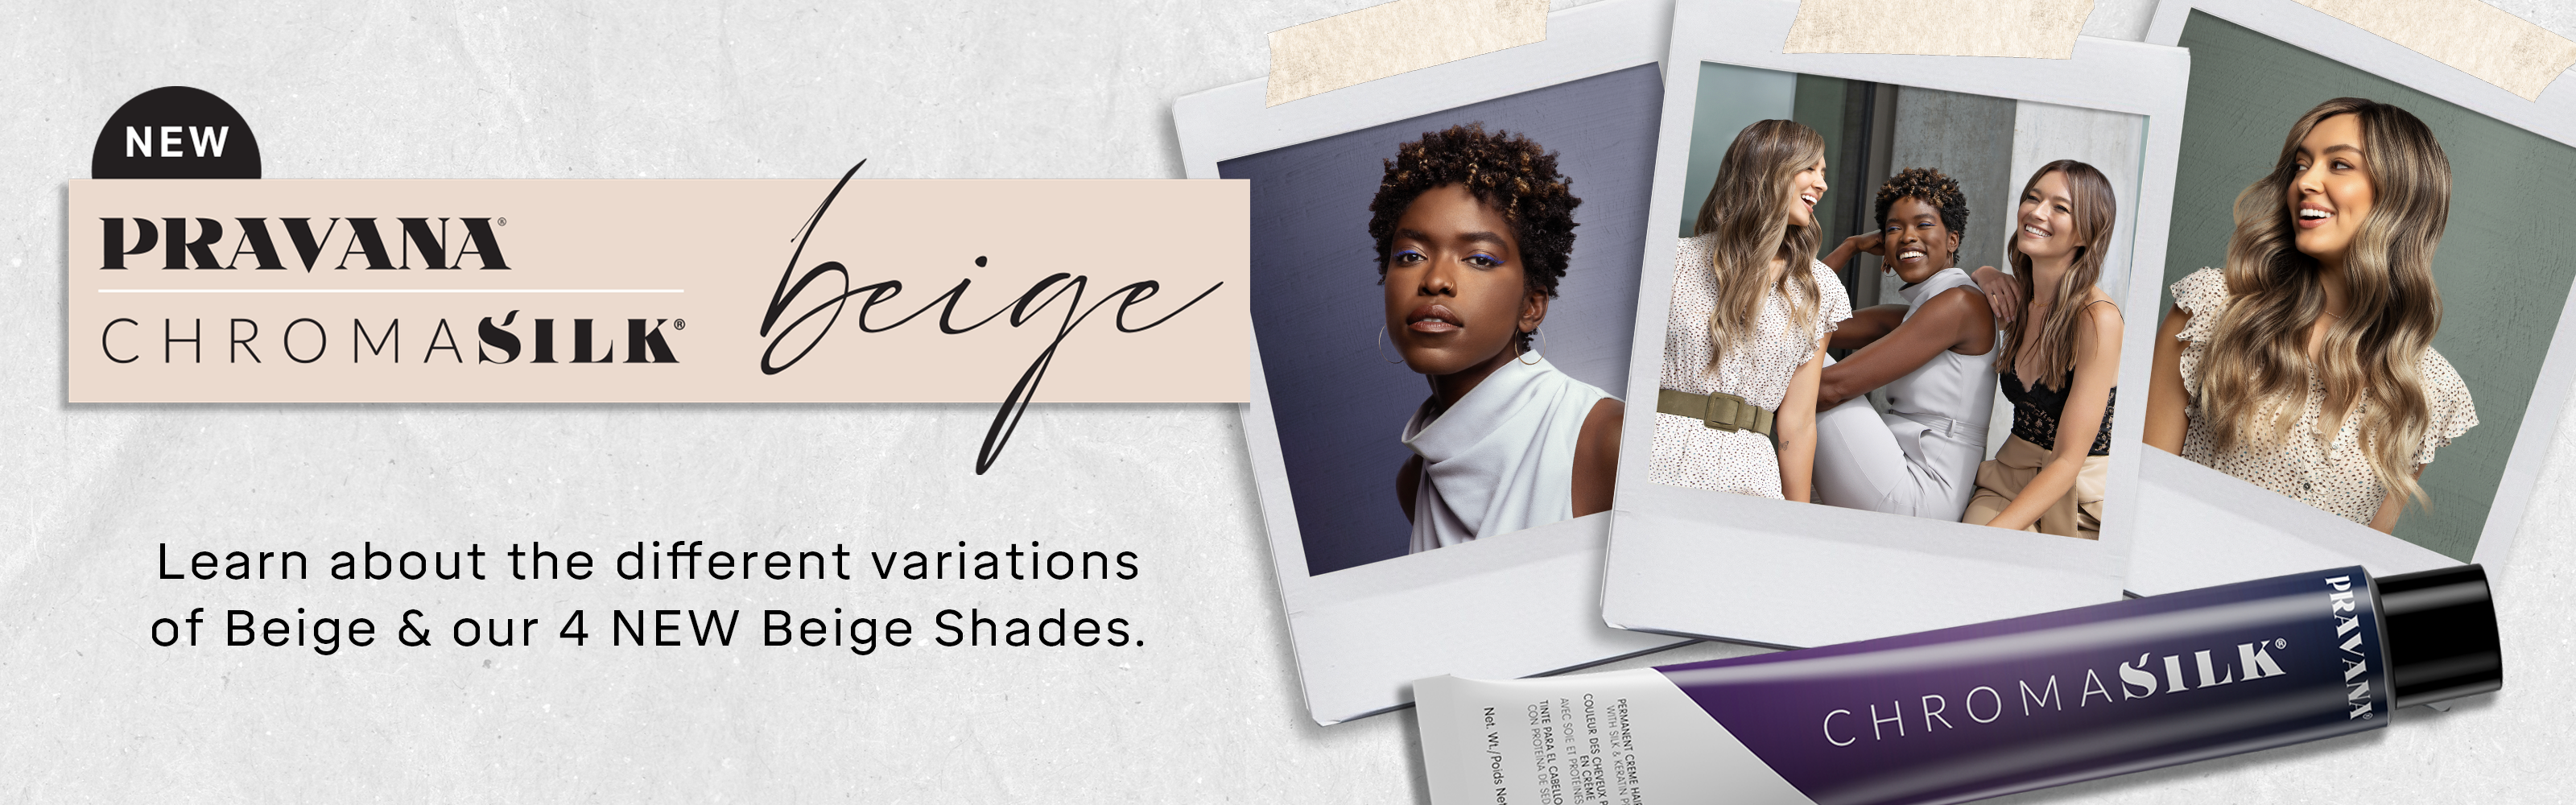 Learn about the different variations of Beige and our 4 new shades